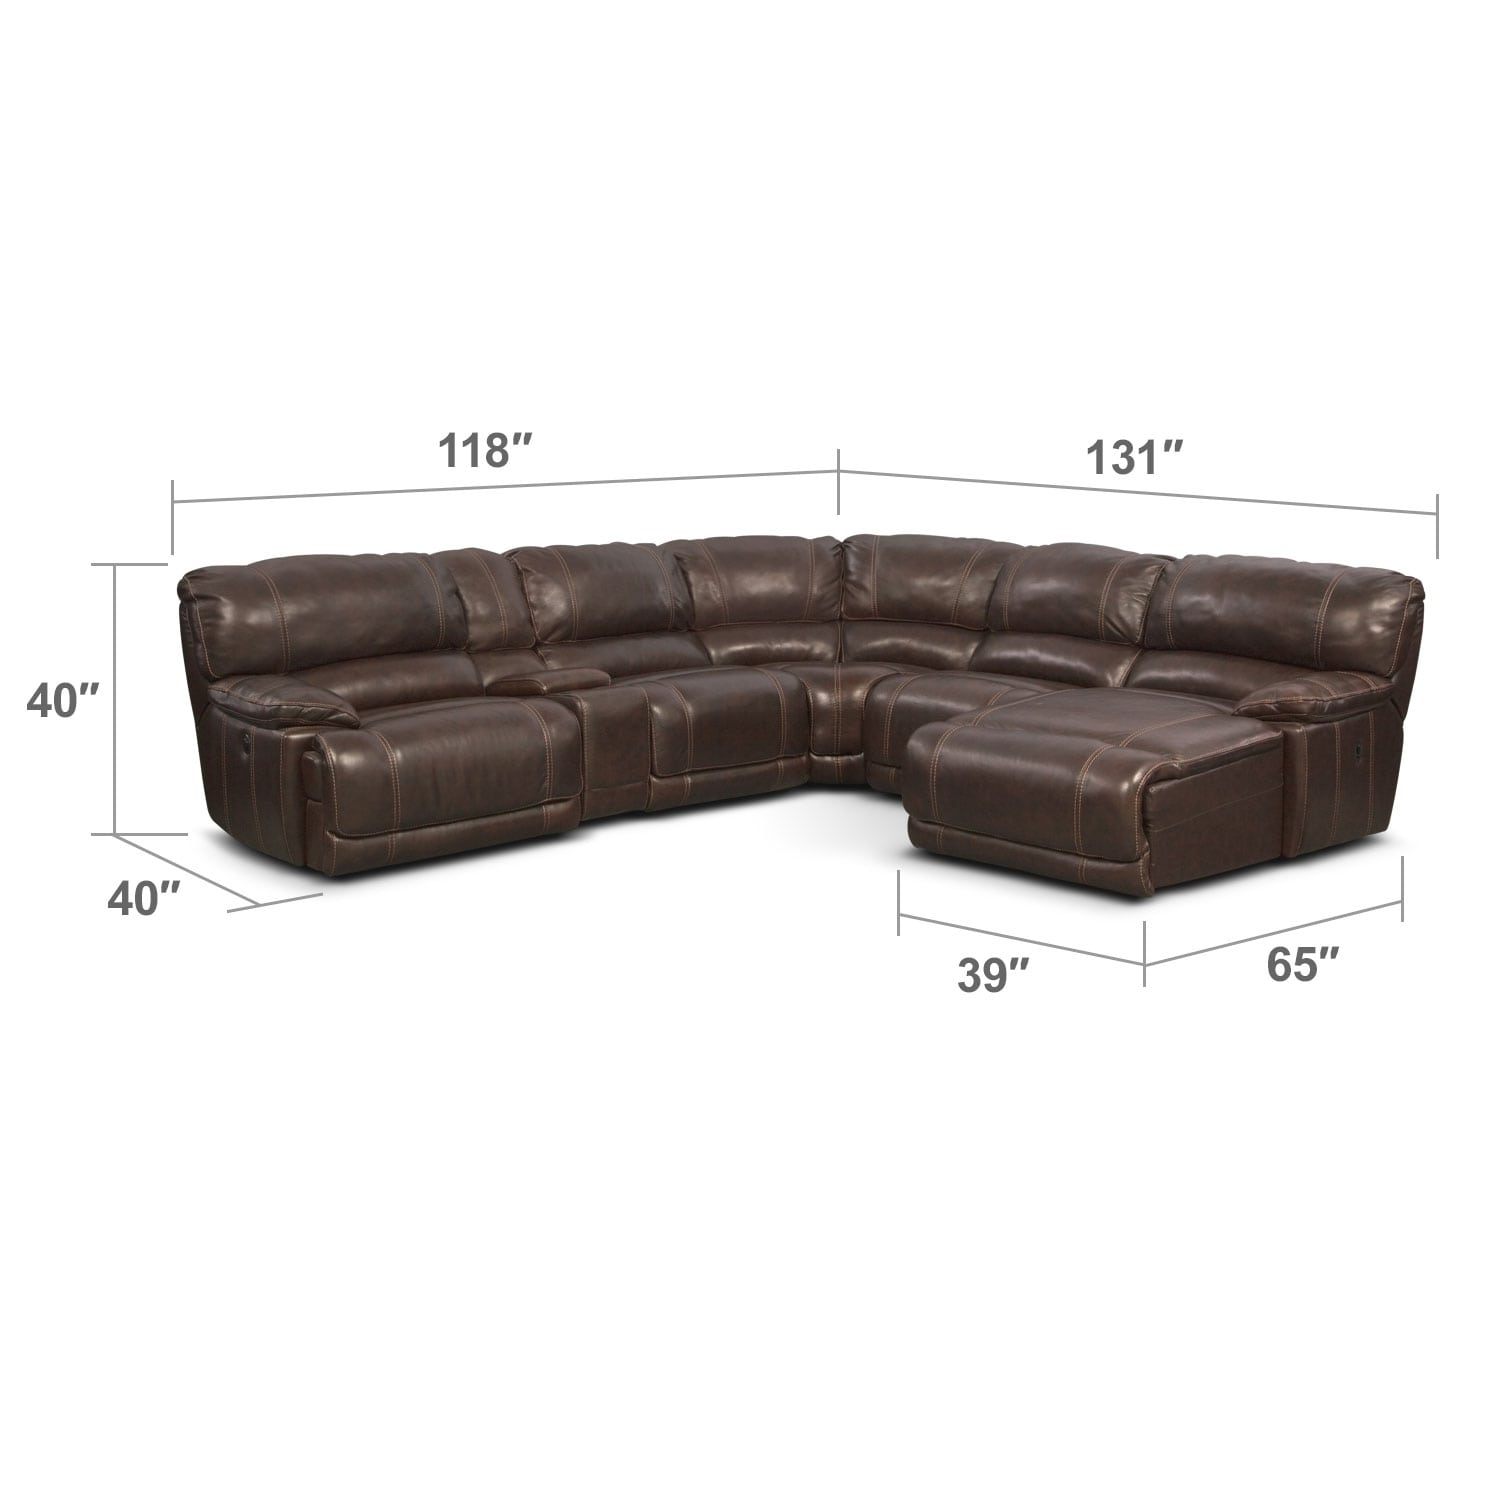 Living Room Furniture - St. Malo 6-Piece Right-Facing Power Reclining Sectional - Brown